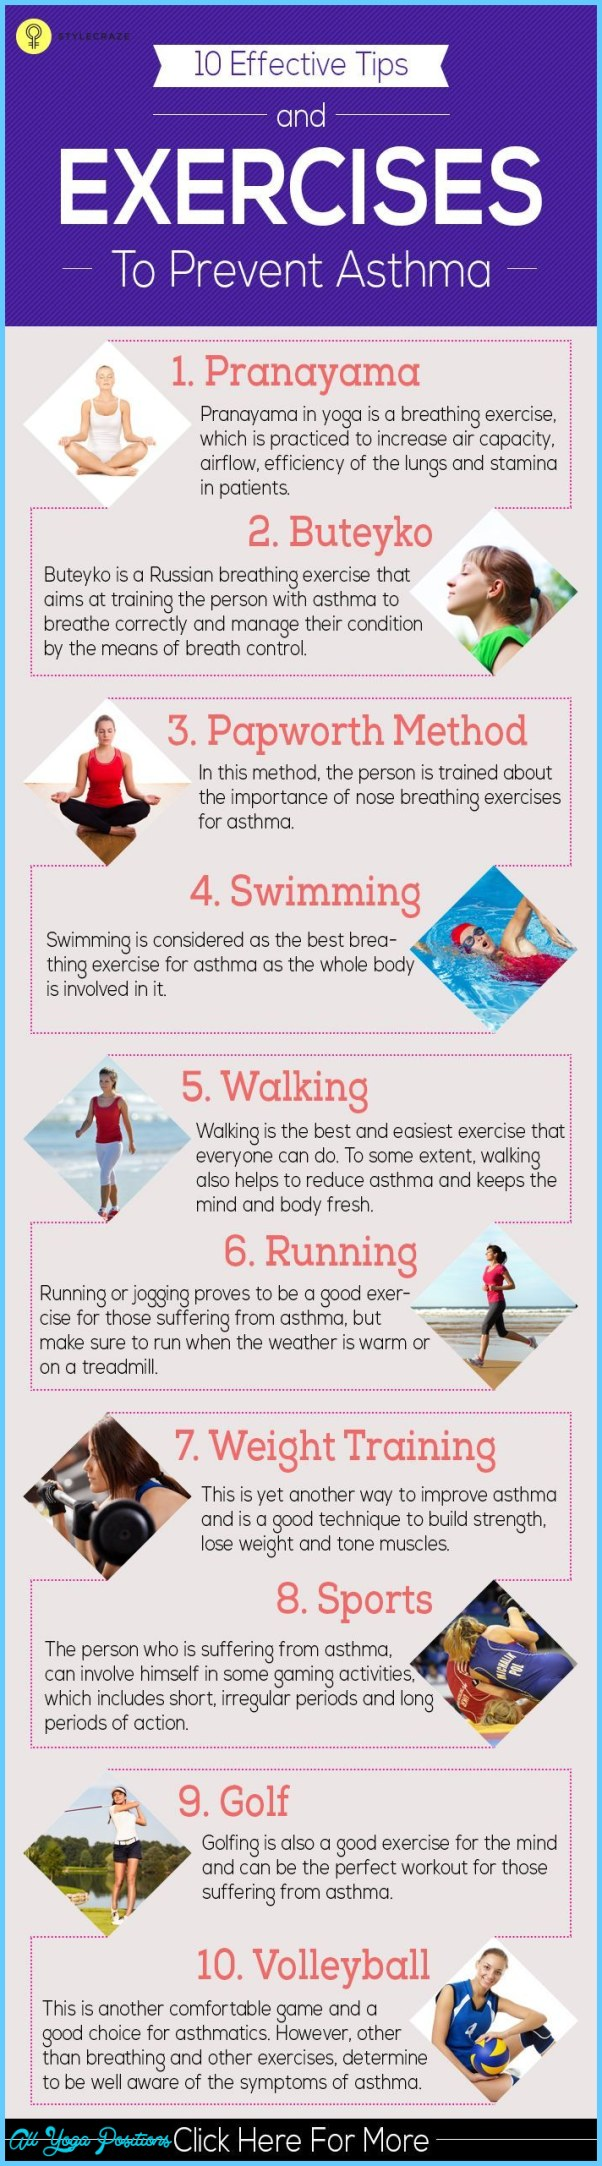 Yoga Breathing Exercises For Asthma_1.jpg